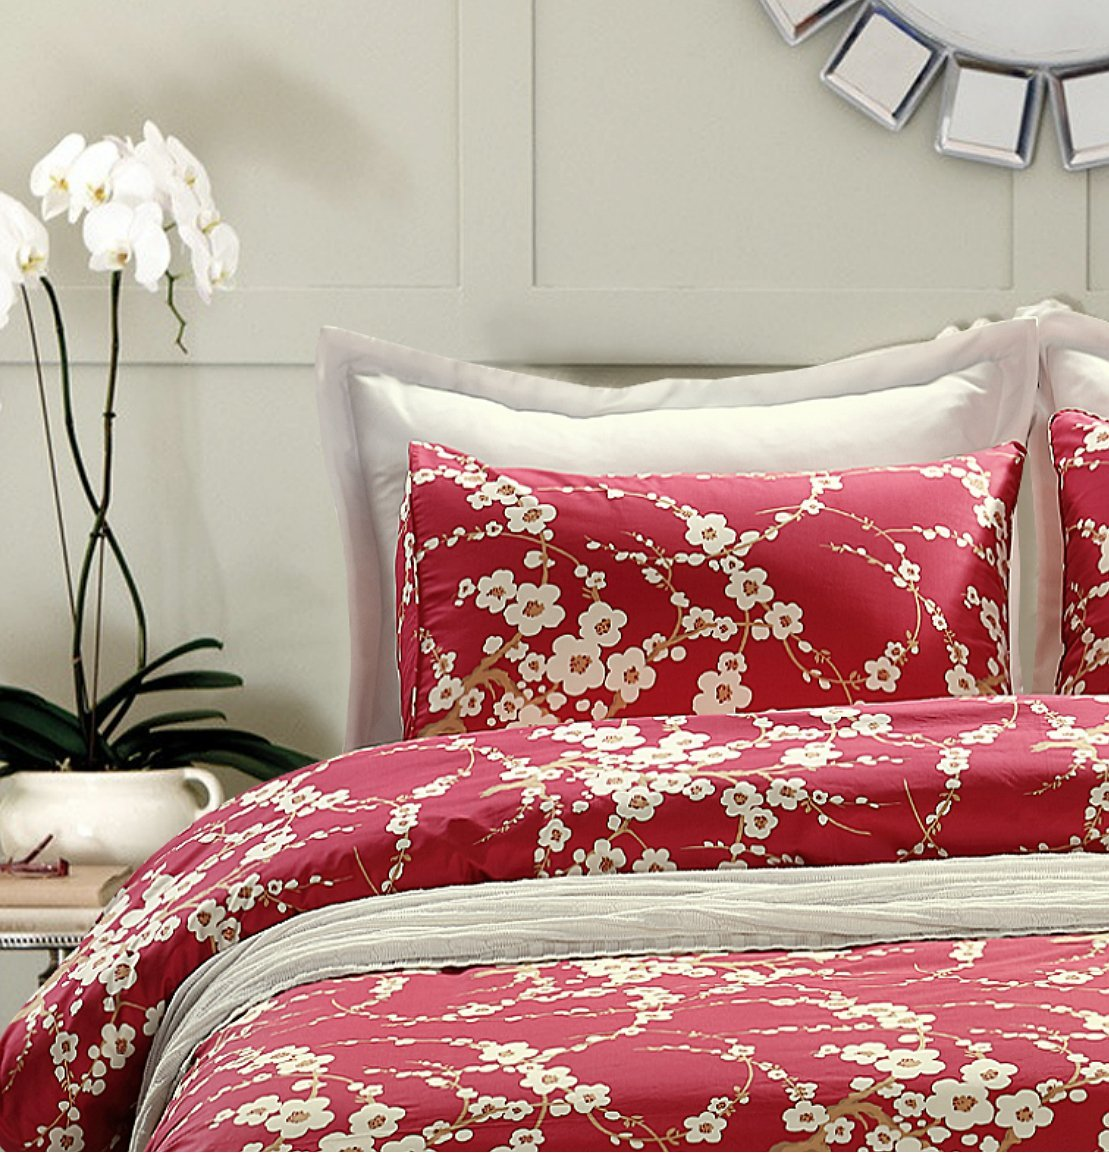 Red Cherry Blossom Duvet Cover And Pillow Cover Set Sweety Pie Inc